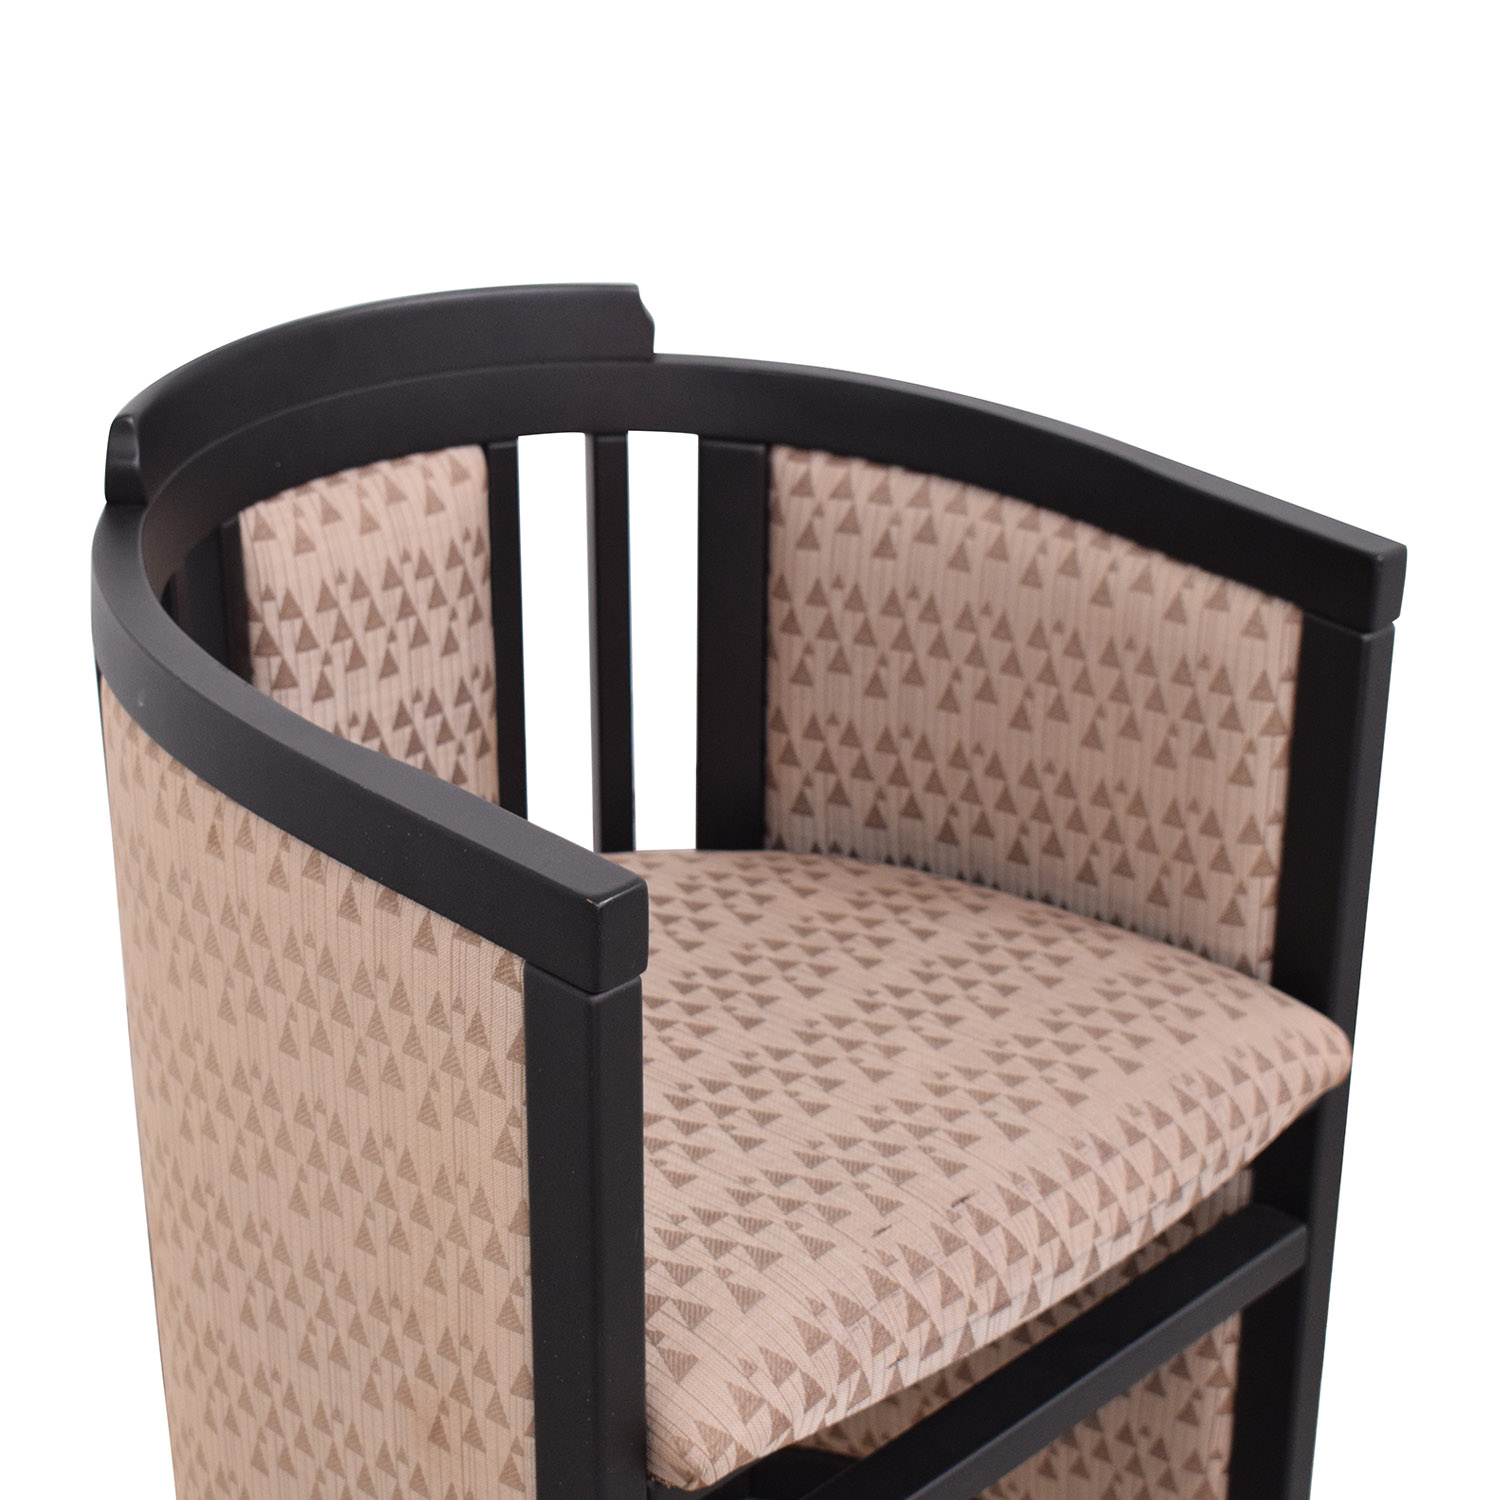 SA A. Sibau SA A. Sibau Accent Chair nj